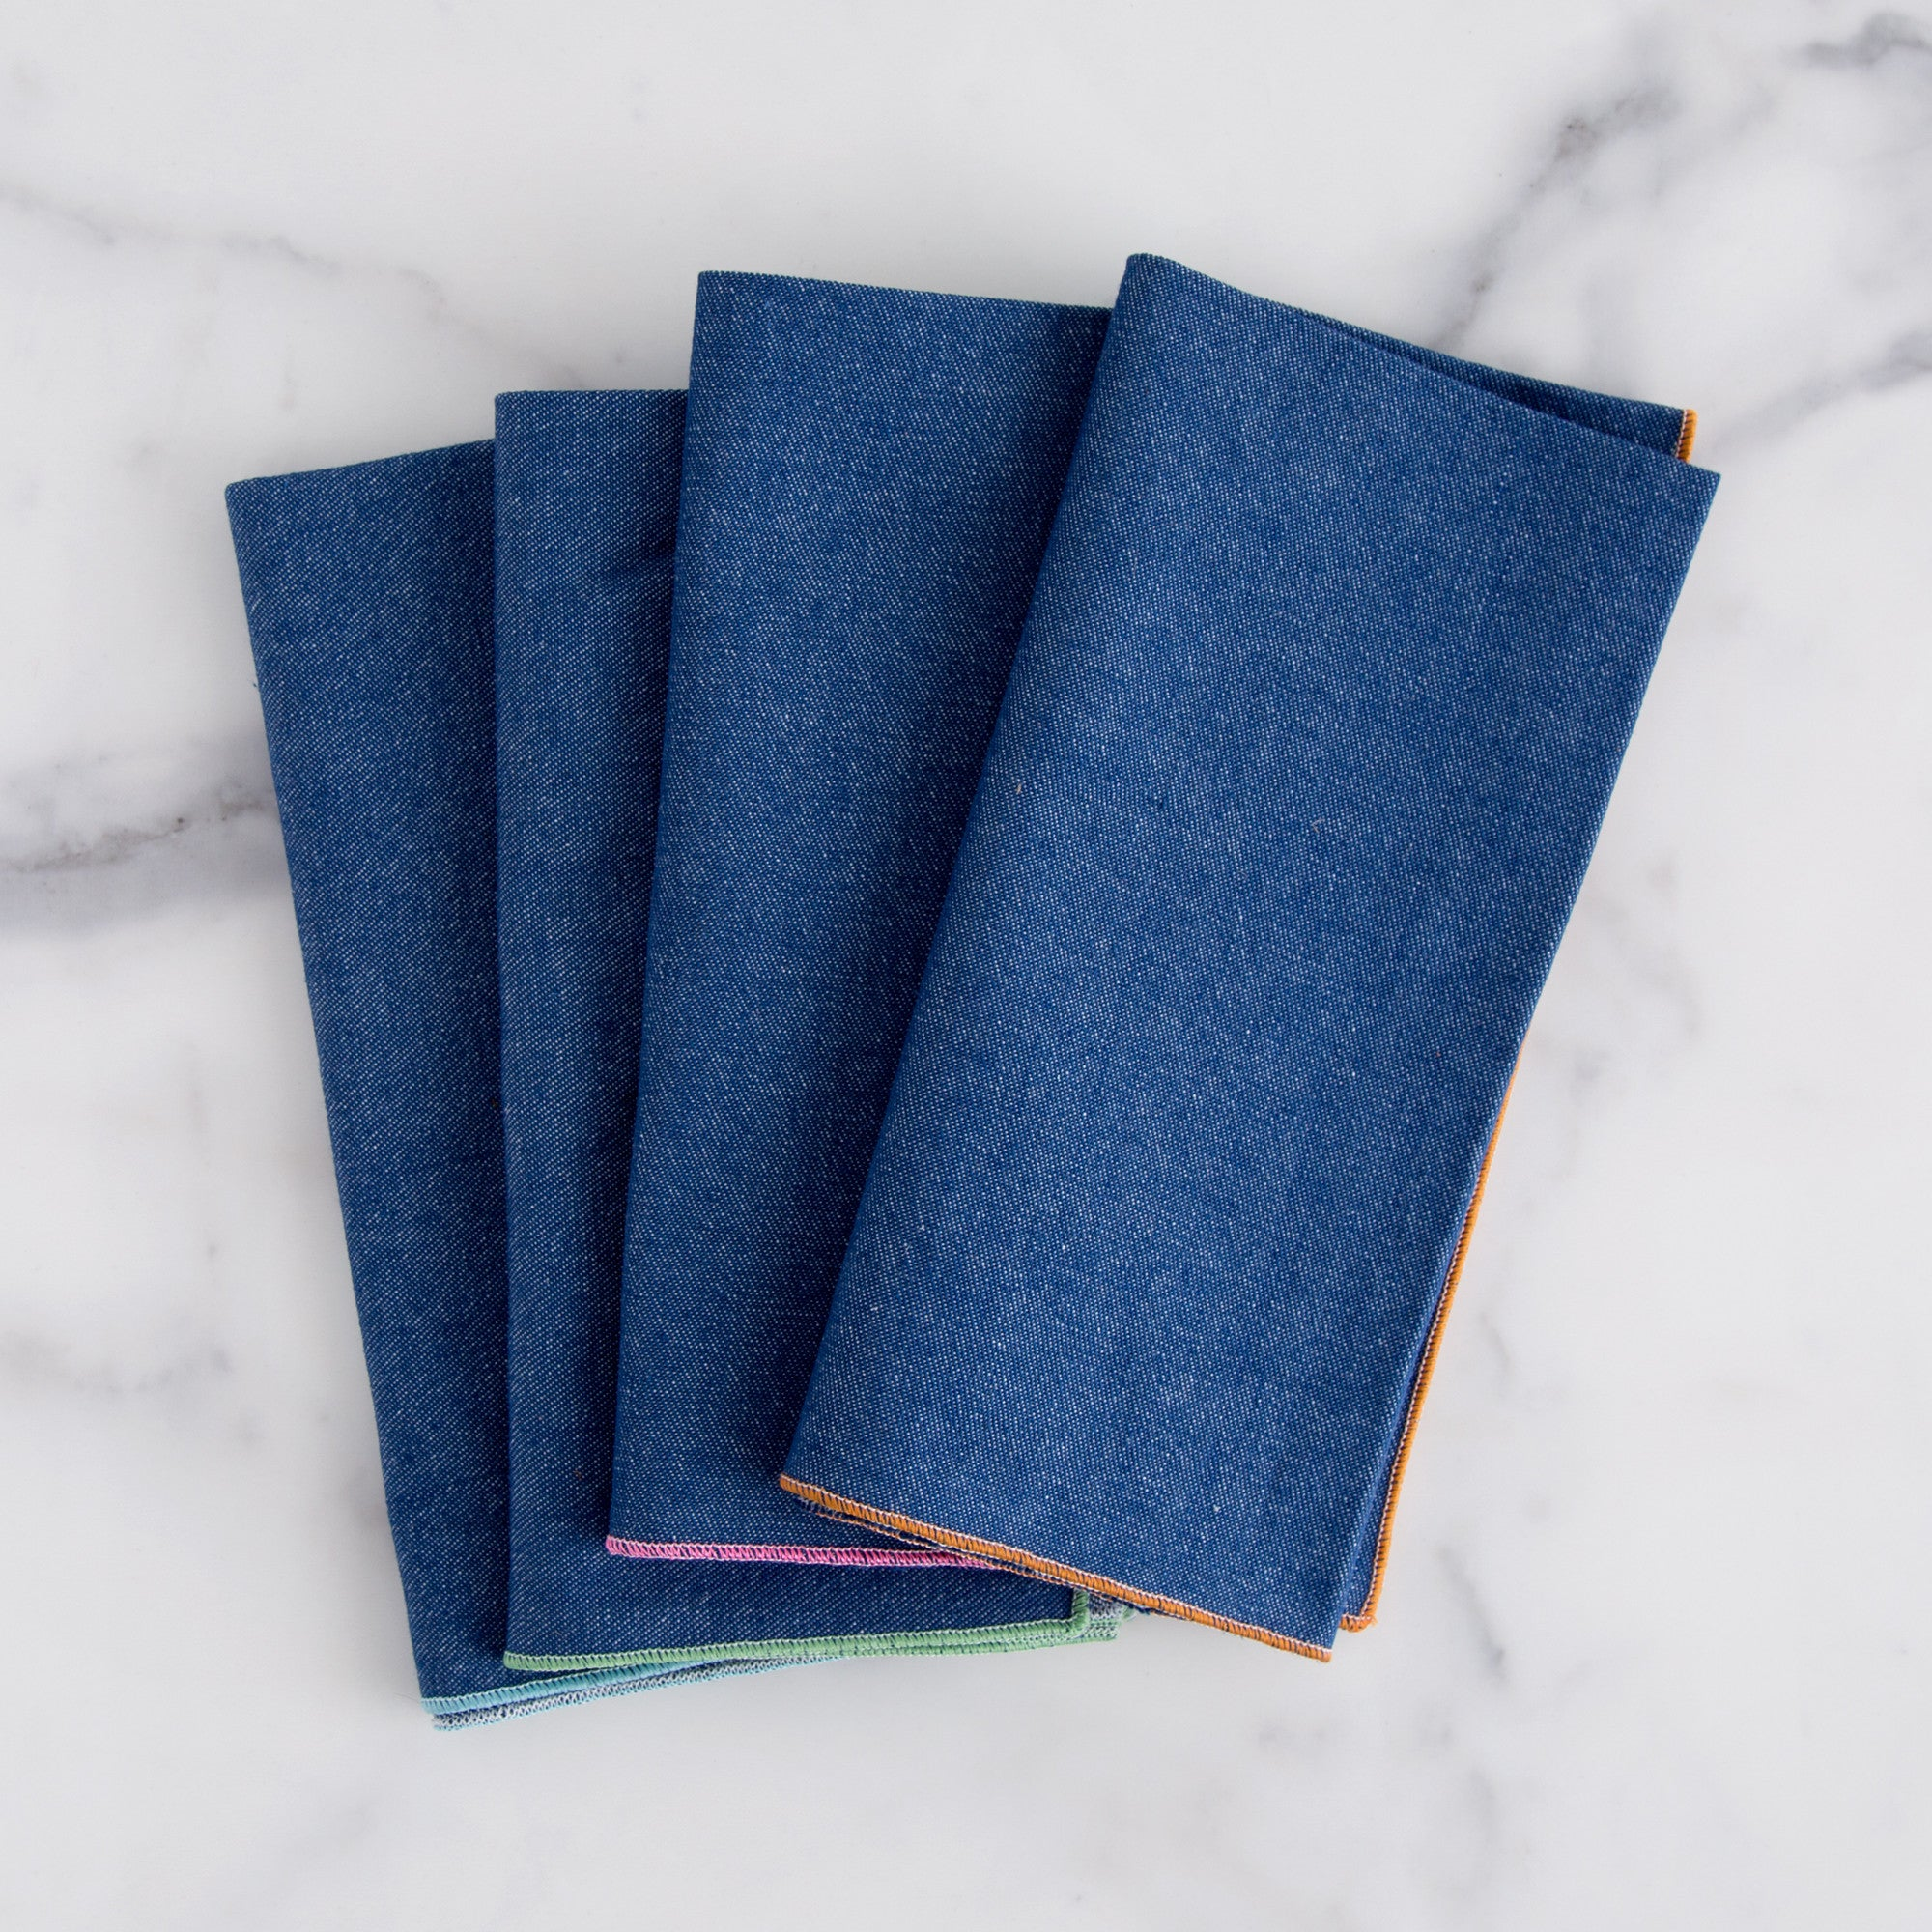 American-made Denim Color Edge (Set of 6) by Dot and Army - Carpenter Hill